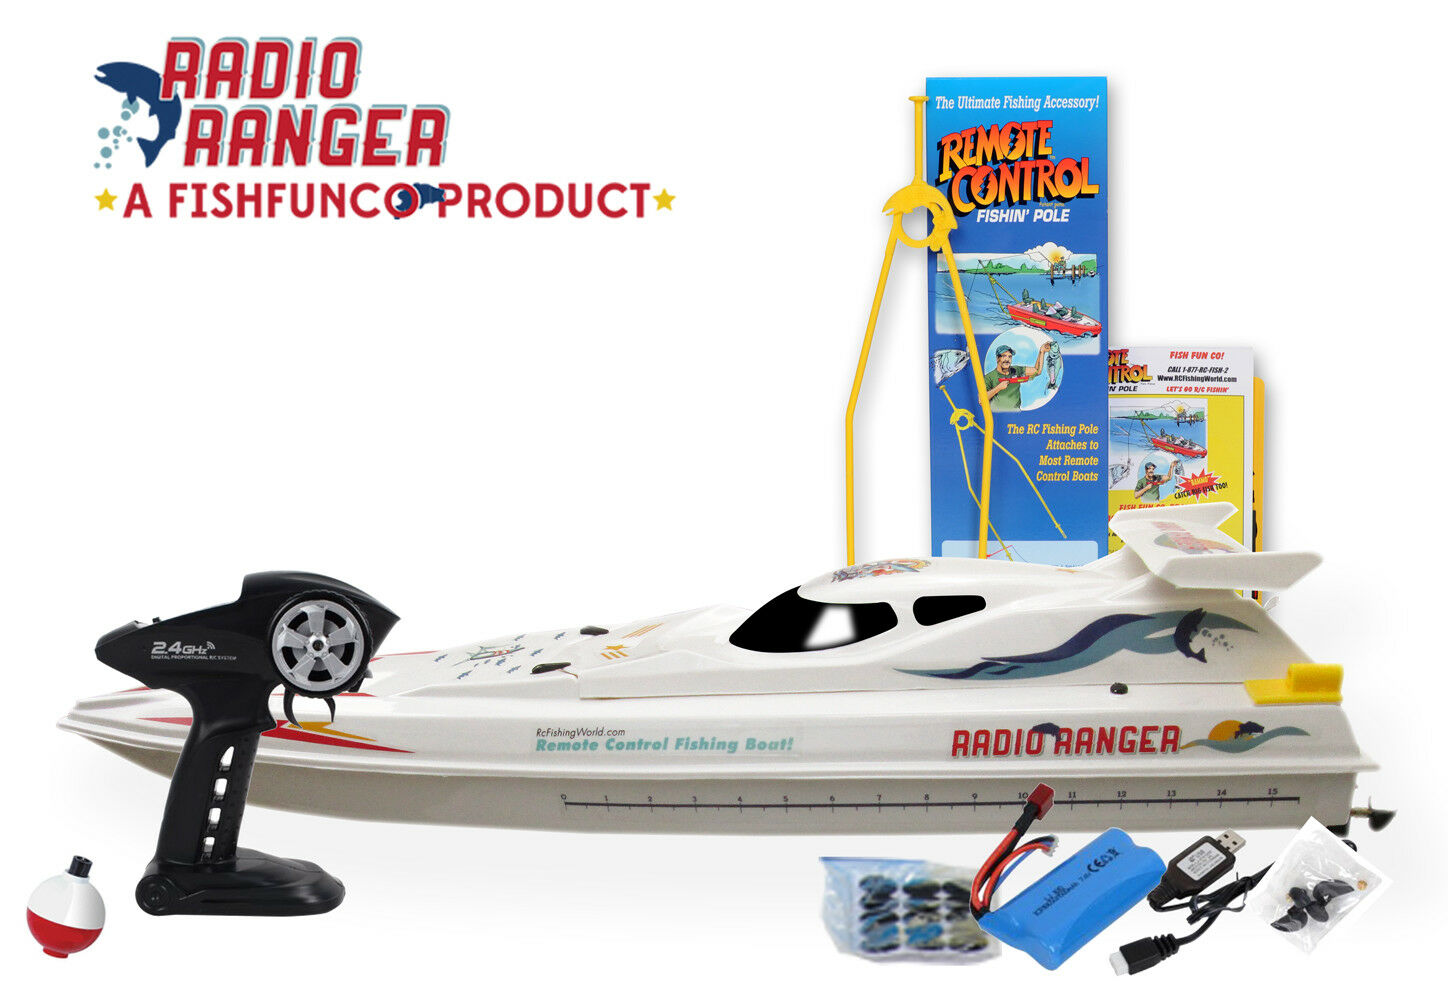 Radio Ranger lll  34  Remote Control Fishing Boat UPGRADED 2.4Ghz Remote System